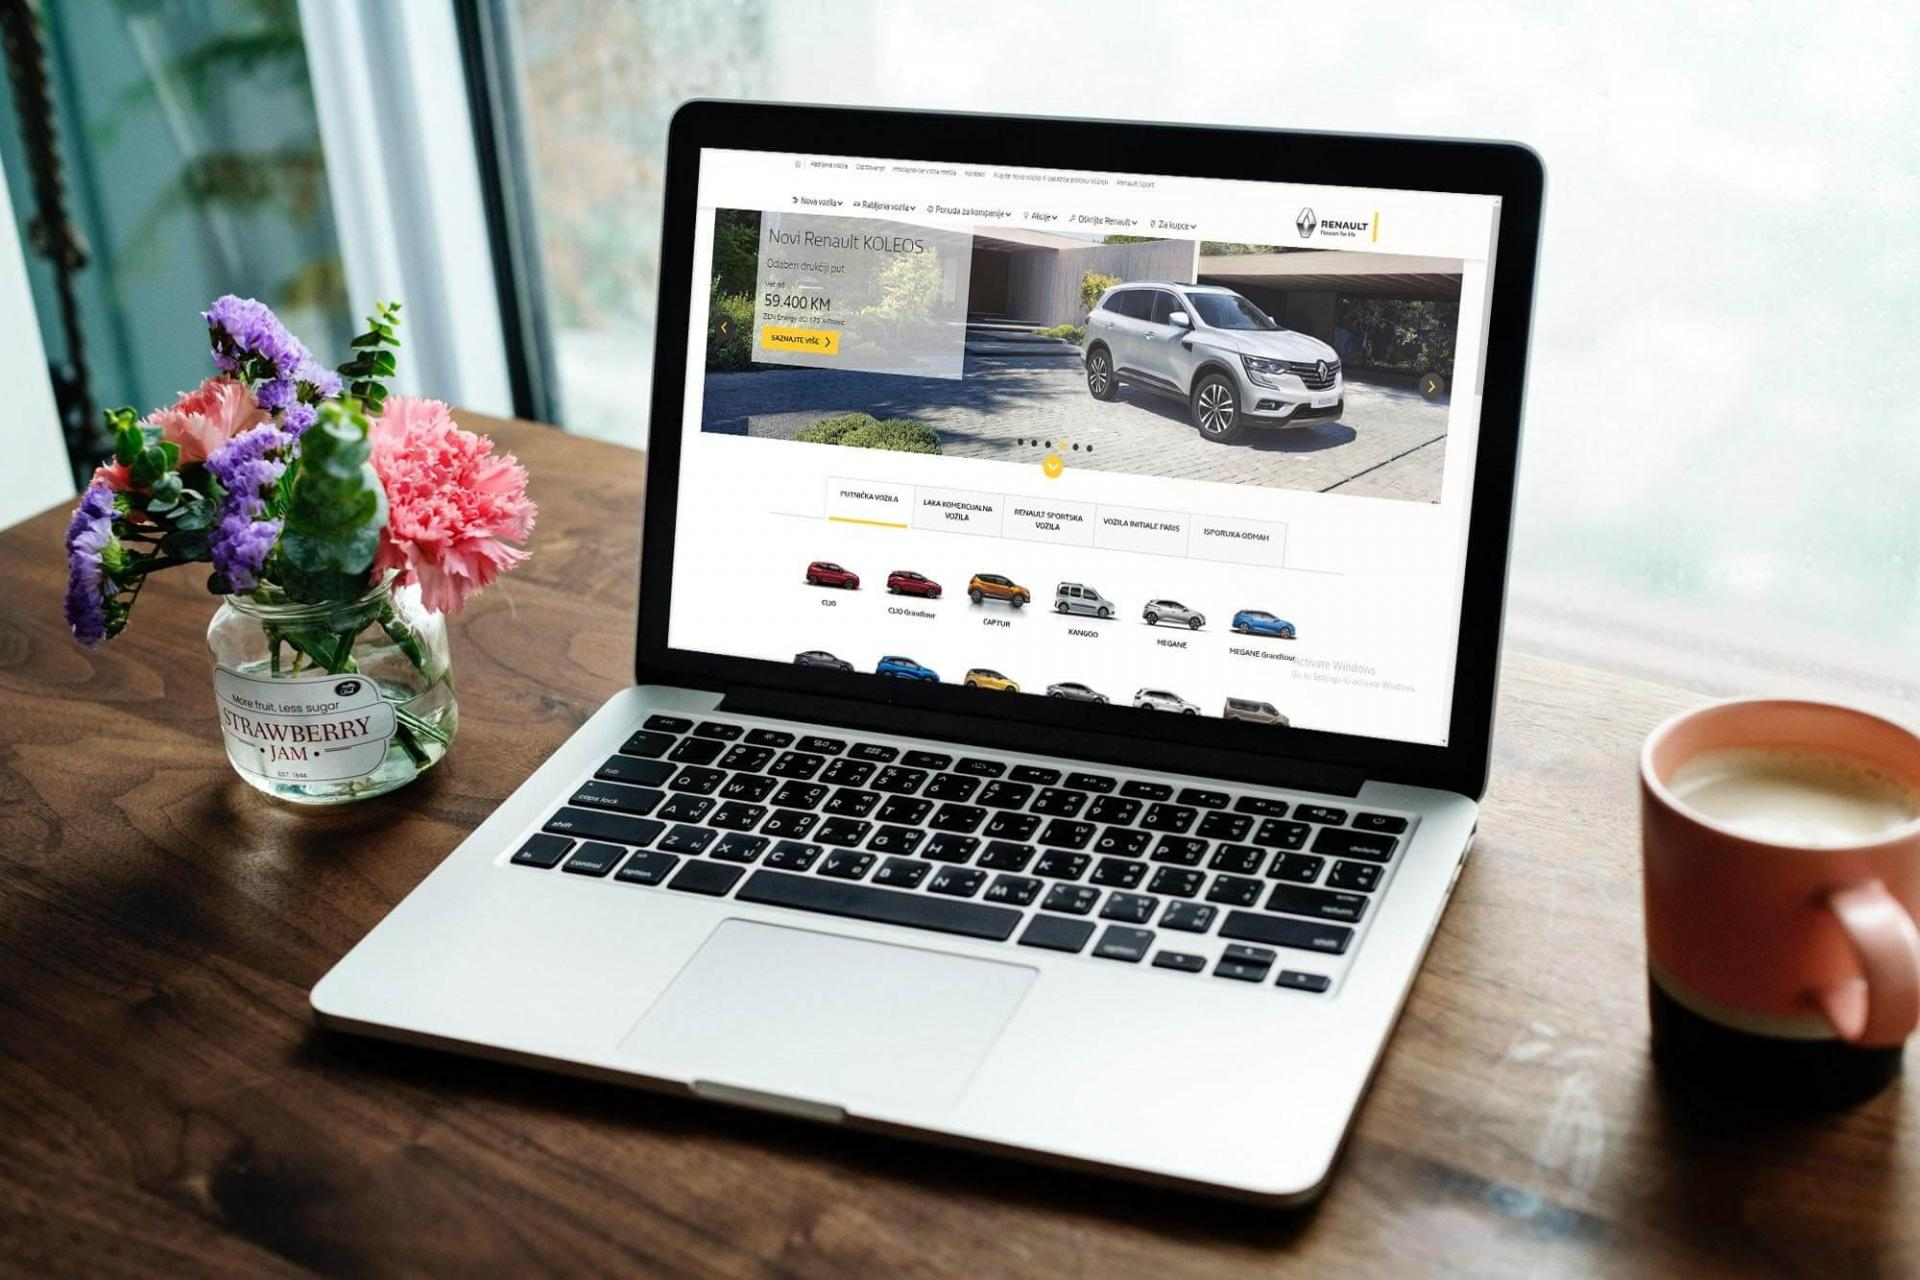 Renault web application